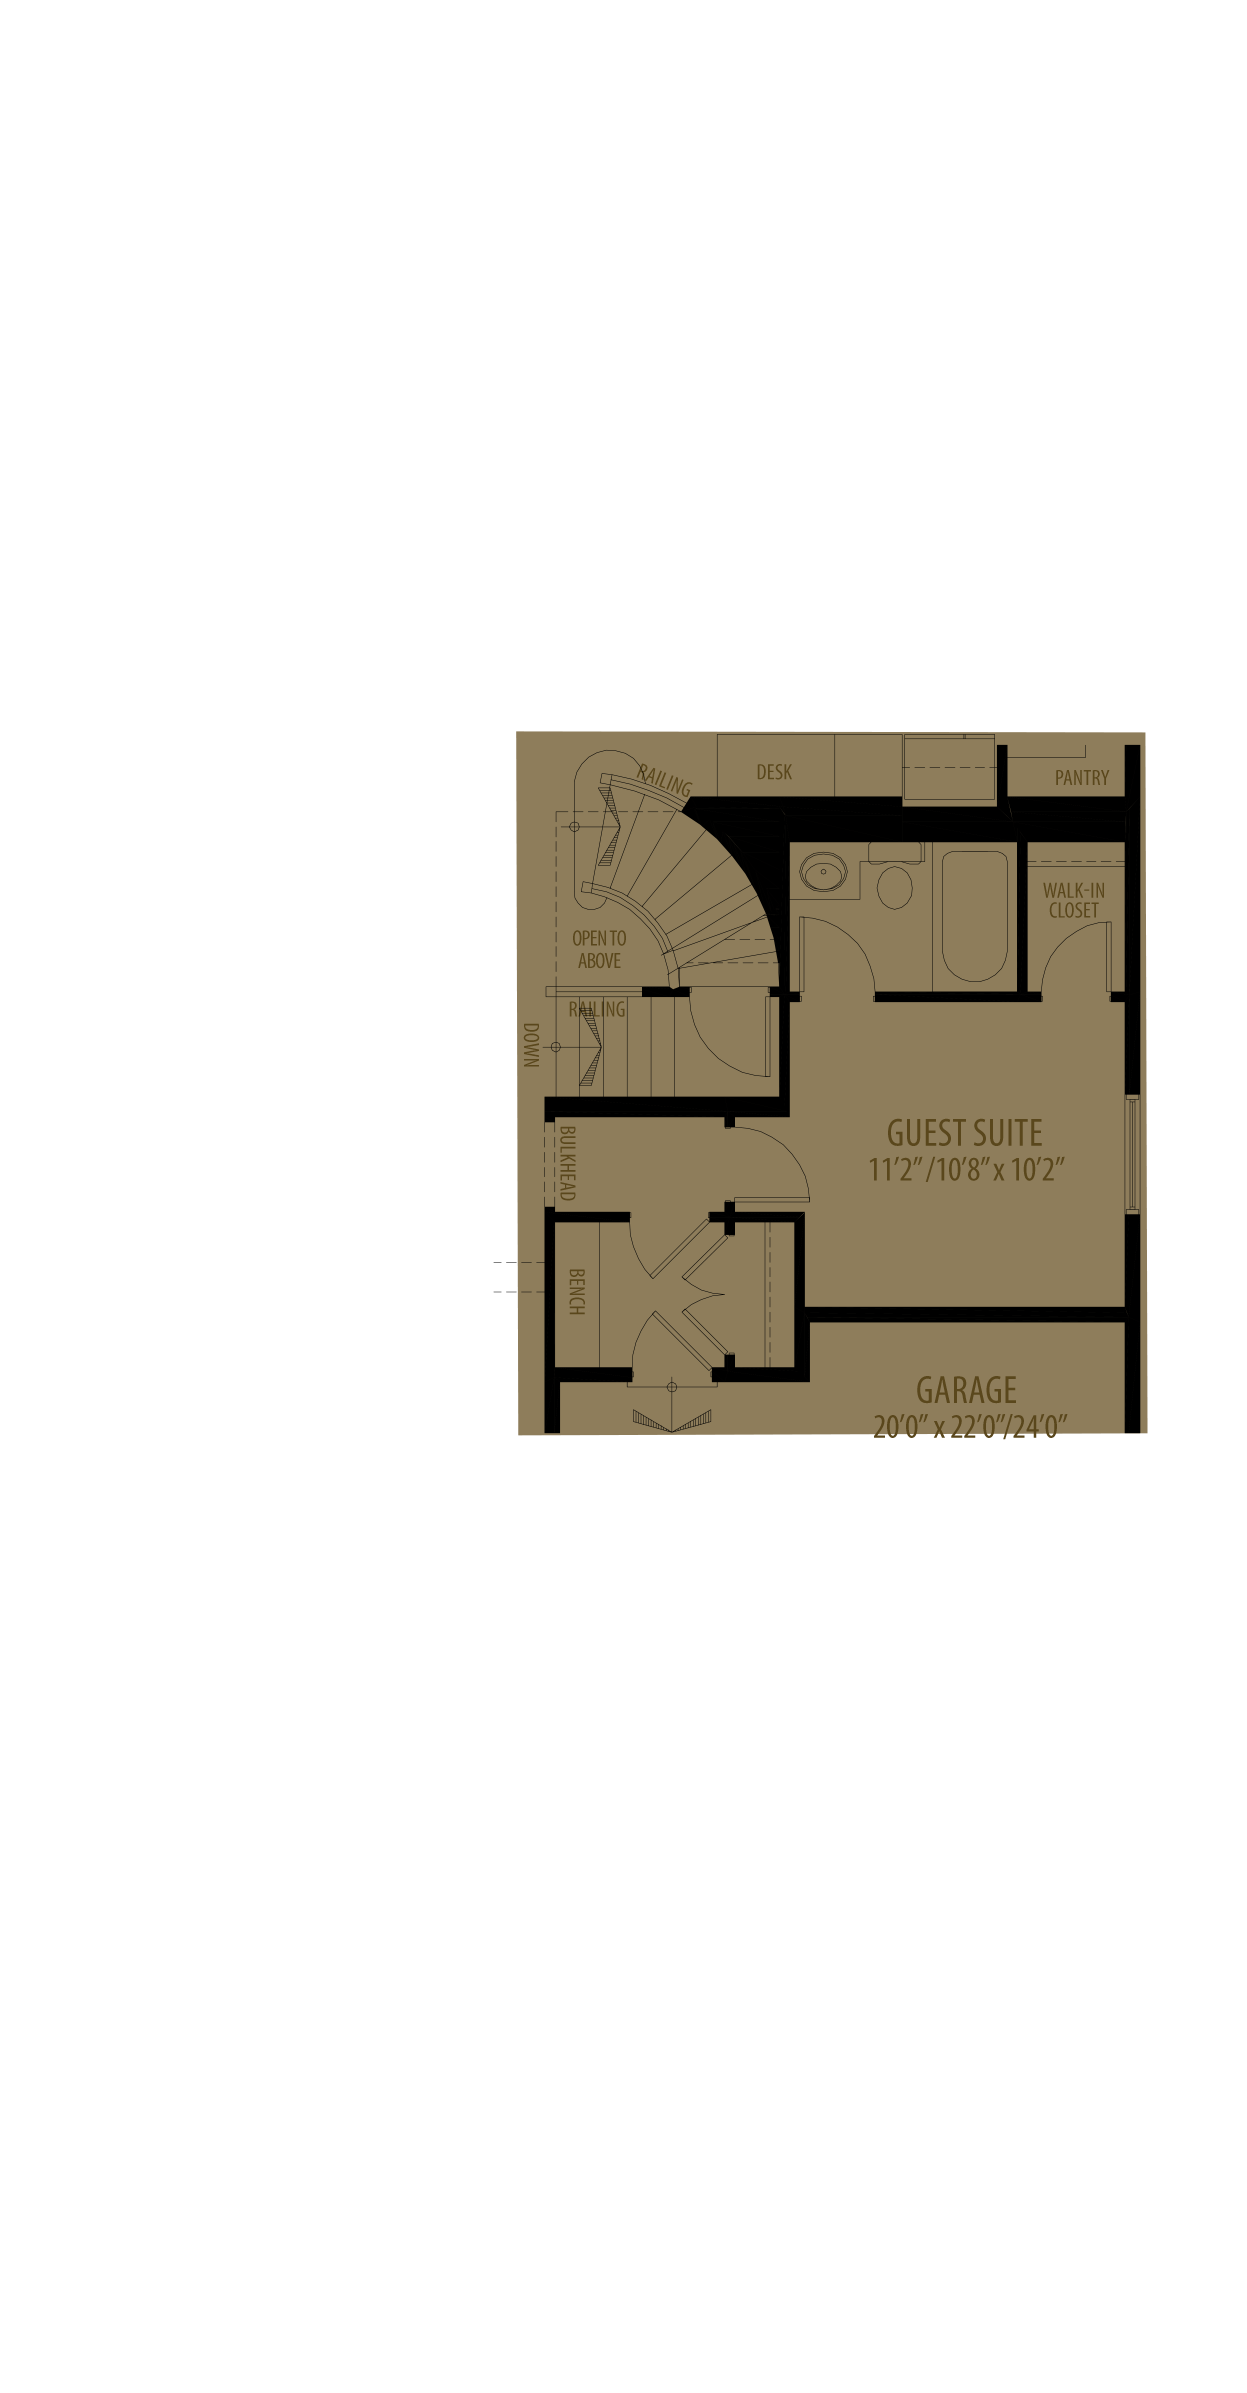 Guest Suite Adds 176 Sq Ft